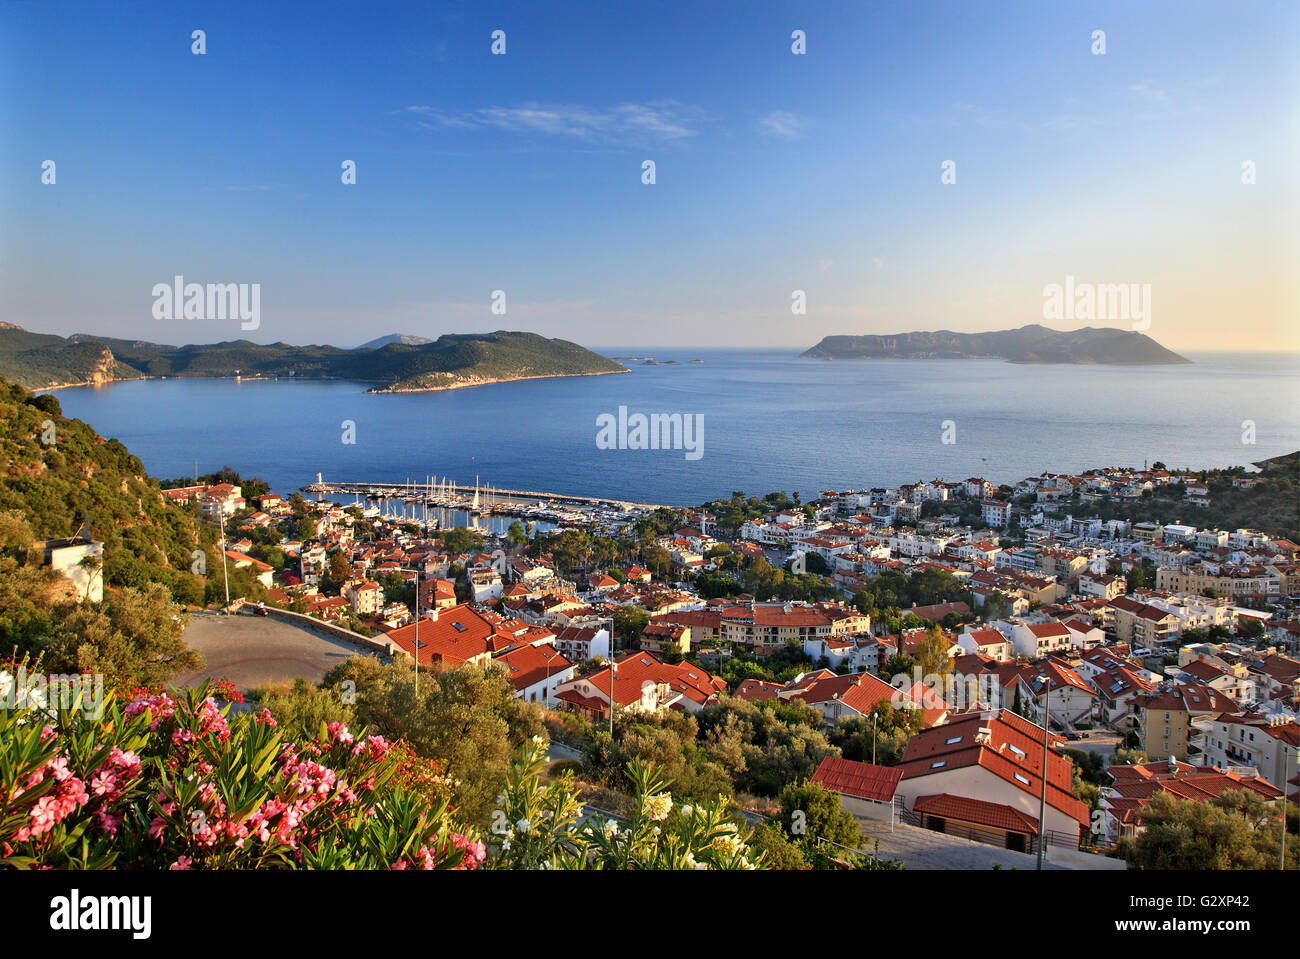 The picturesque town of Kas (ancient name 'Antiphellos'), Lycia, Antalya province Turkey. In the BG Kastelorizo - Stock Image